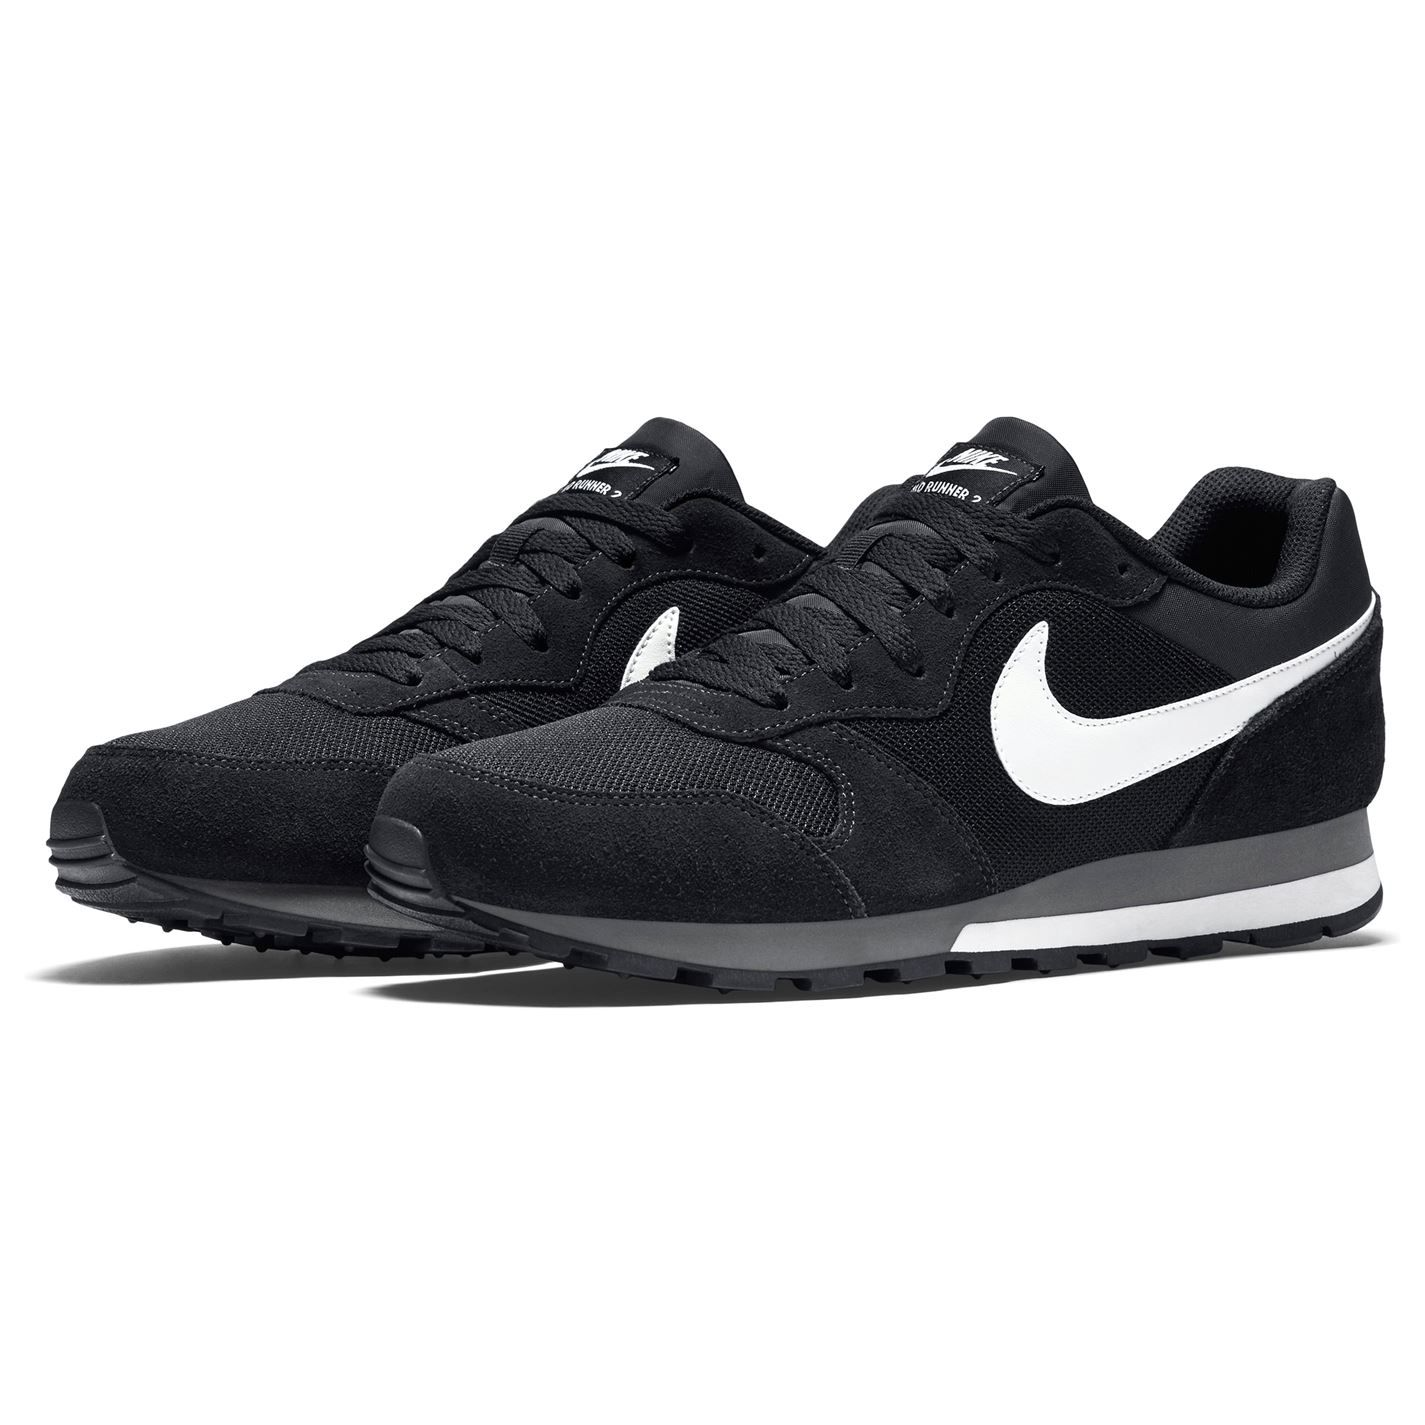 perfume Florecer mineral  Men's Nike MD Runner 2 Shoe Men's Shoe | SportsDirect.com USA in 2020 |  Sneakers nike, Sneakers men fashion, Nike